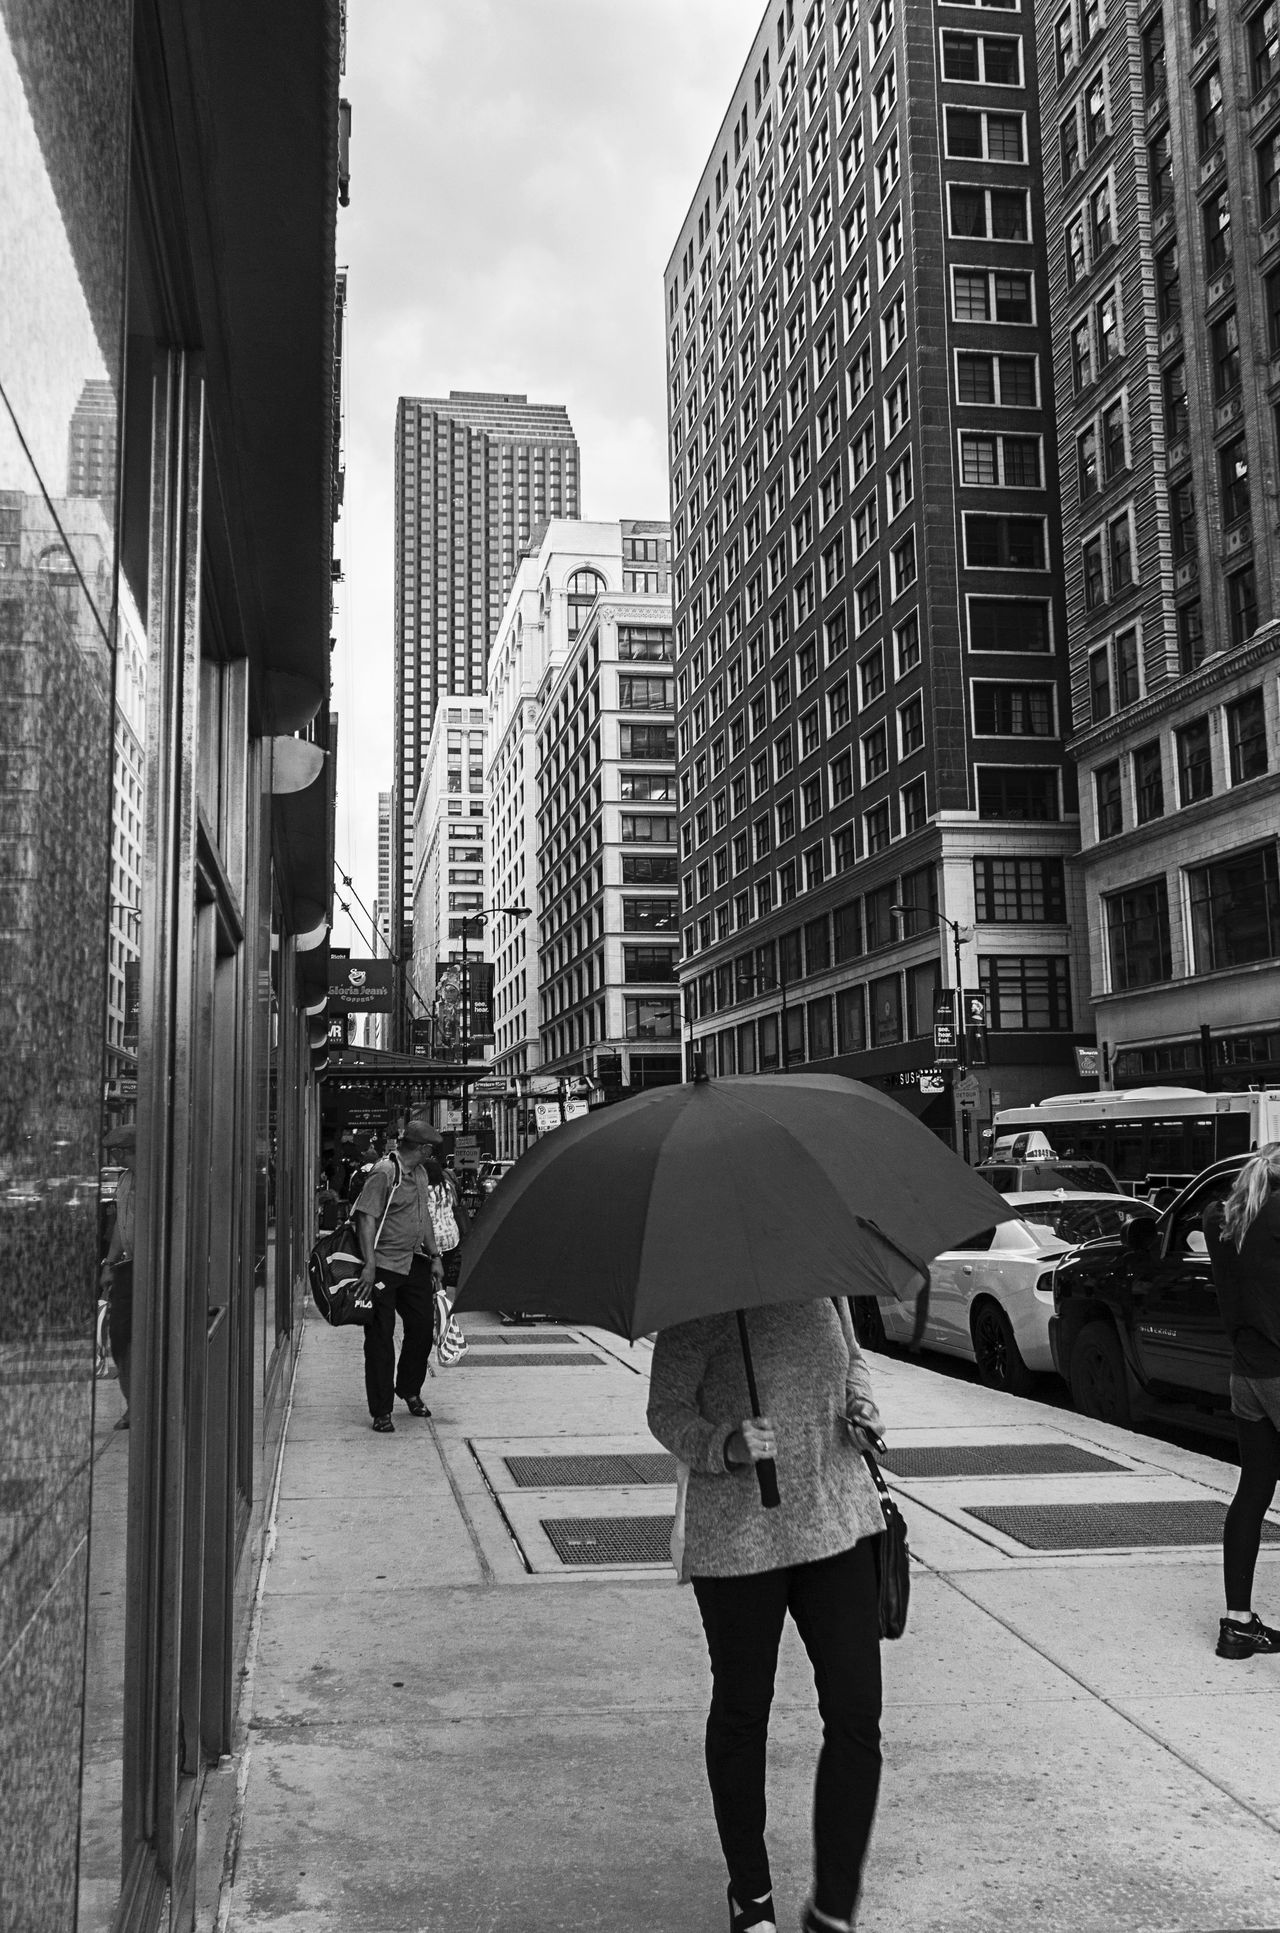 Adult Architecture Black And White Blackandwhite Building Exterior Built Structure City City Life Day Modern Monochrome Outdoors People Rain Rain Rainy Days Real People Sky Skyscraper Umbrella Walk Weather Wet Women